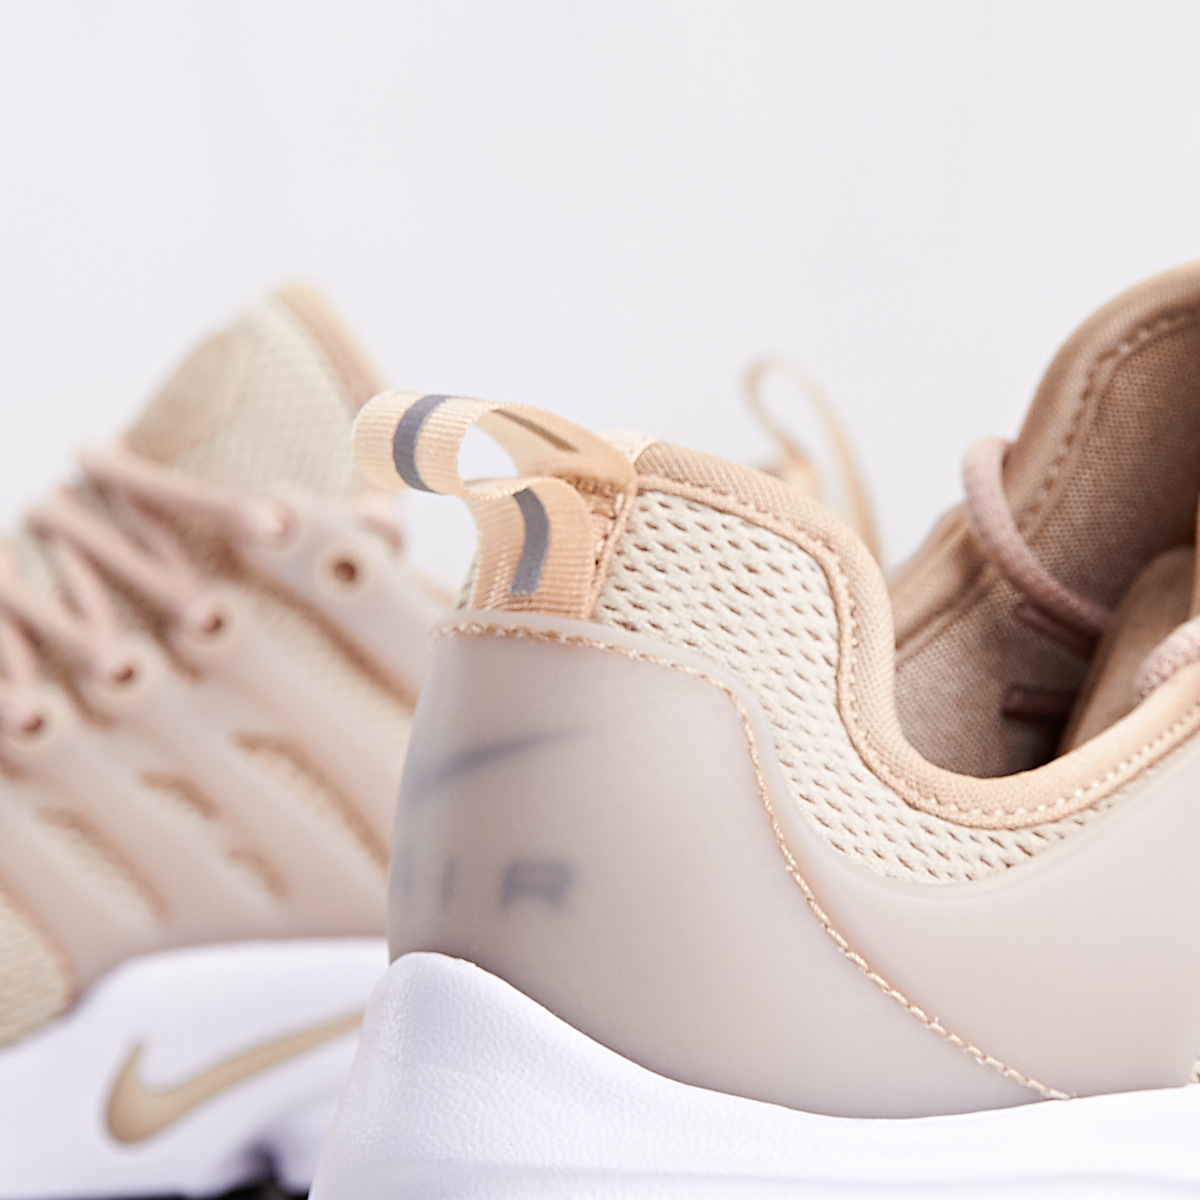 new arrival 1093c 39499 Buy Nike AIR PRESTO Wmns - Beige   878068